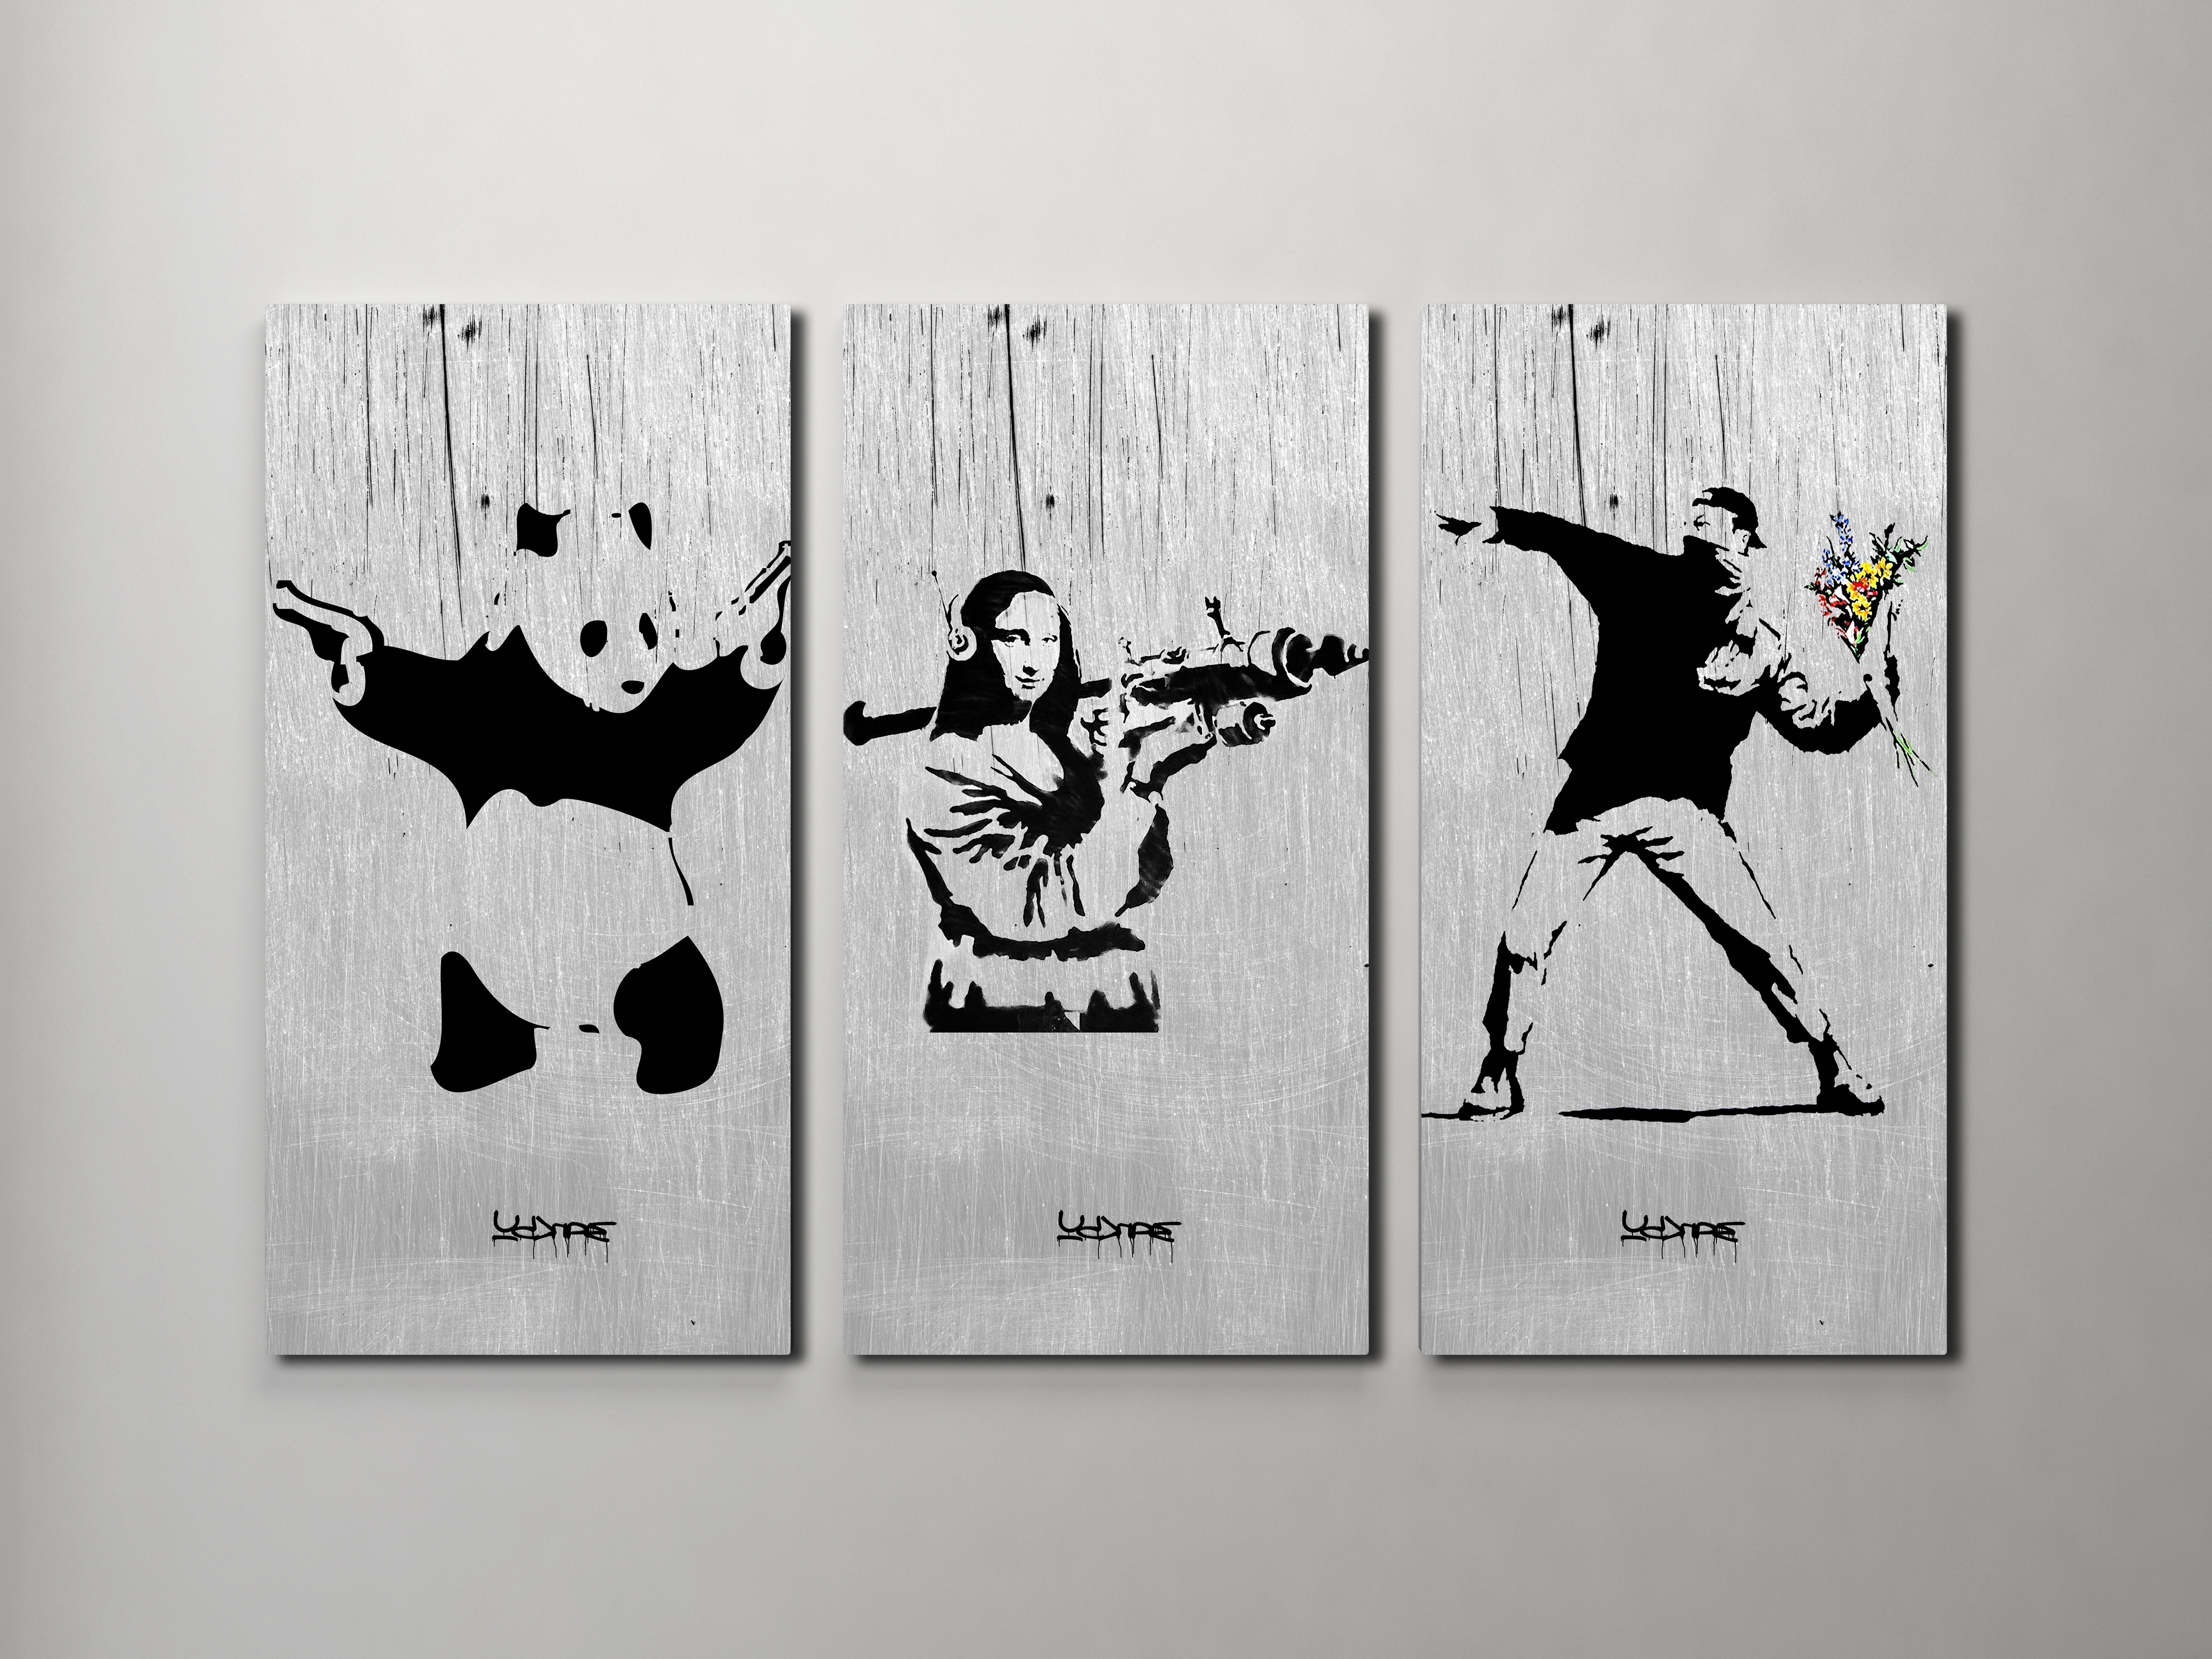 Banksy Canvas Wall Art Throughout Most Popular Banksy Flower Thrower, Mona Lisa, Panda Collage Triptych Canvas (View 7 of 15)